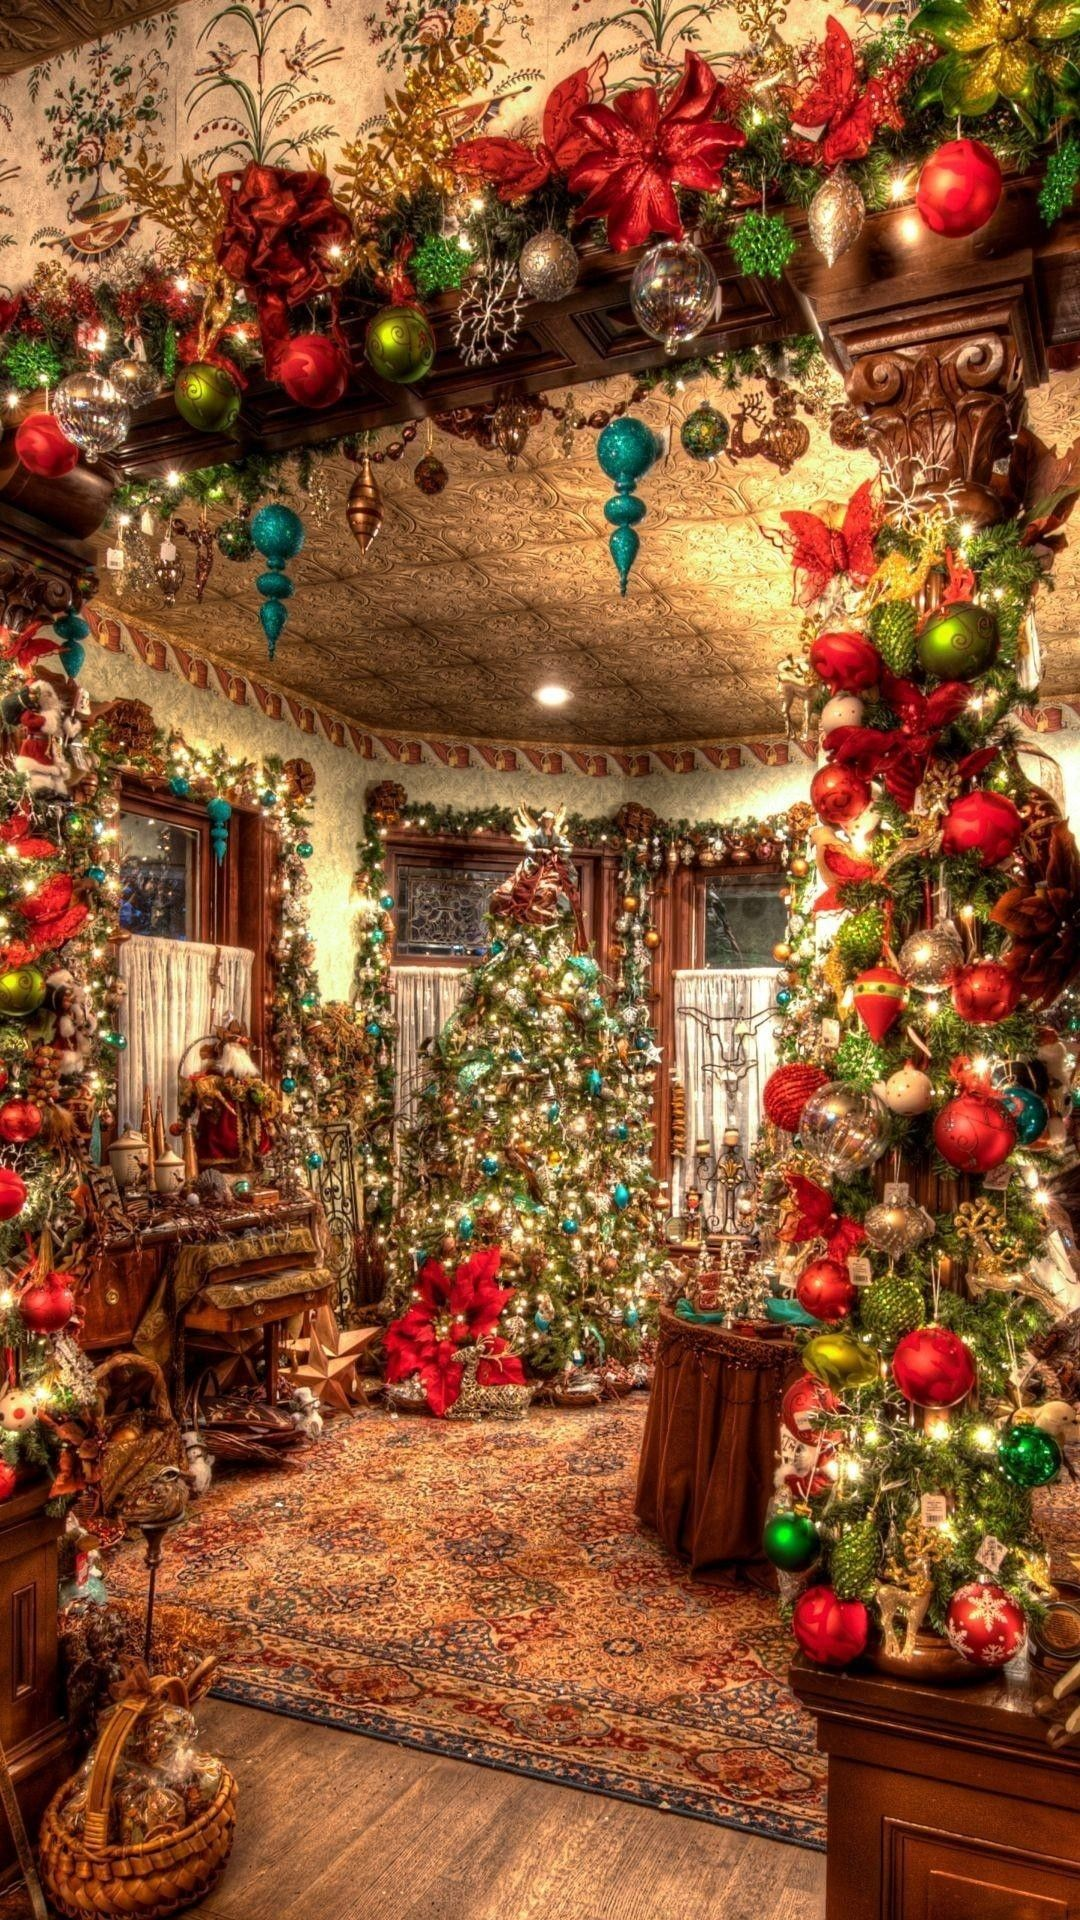 Extreme Decorating But Pretty Christmas Decorations